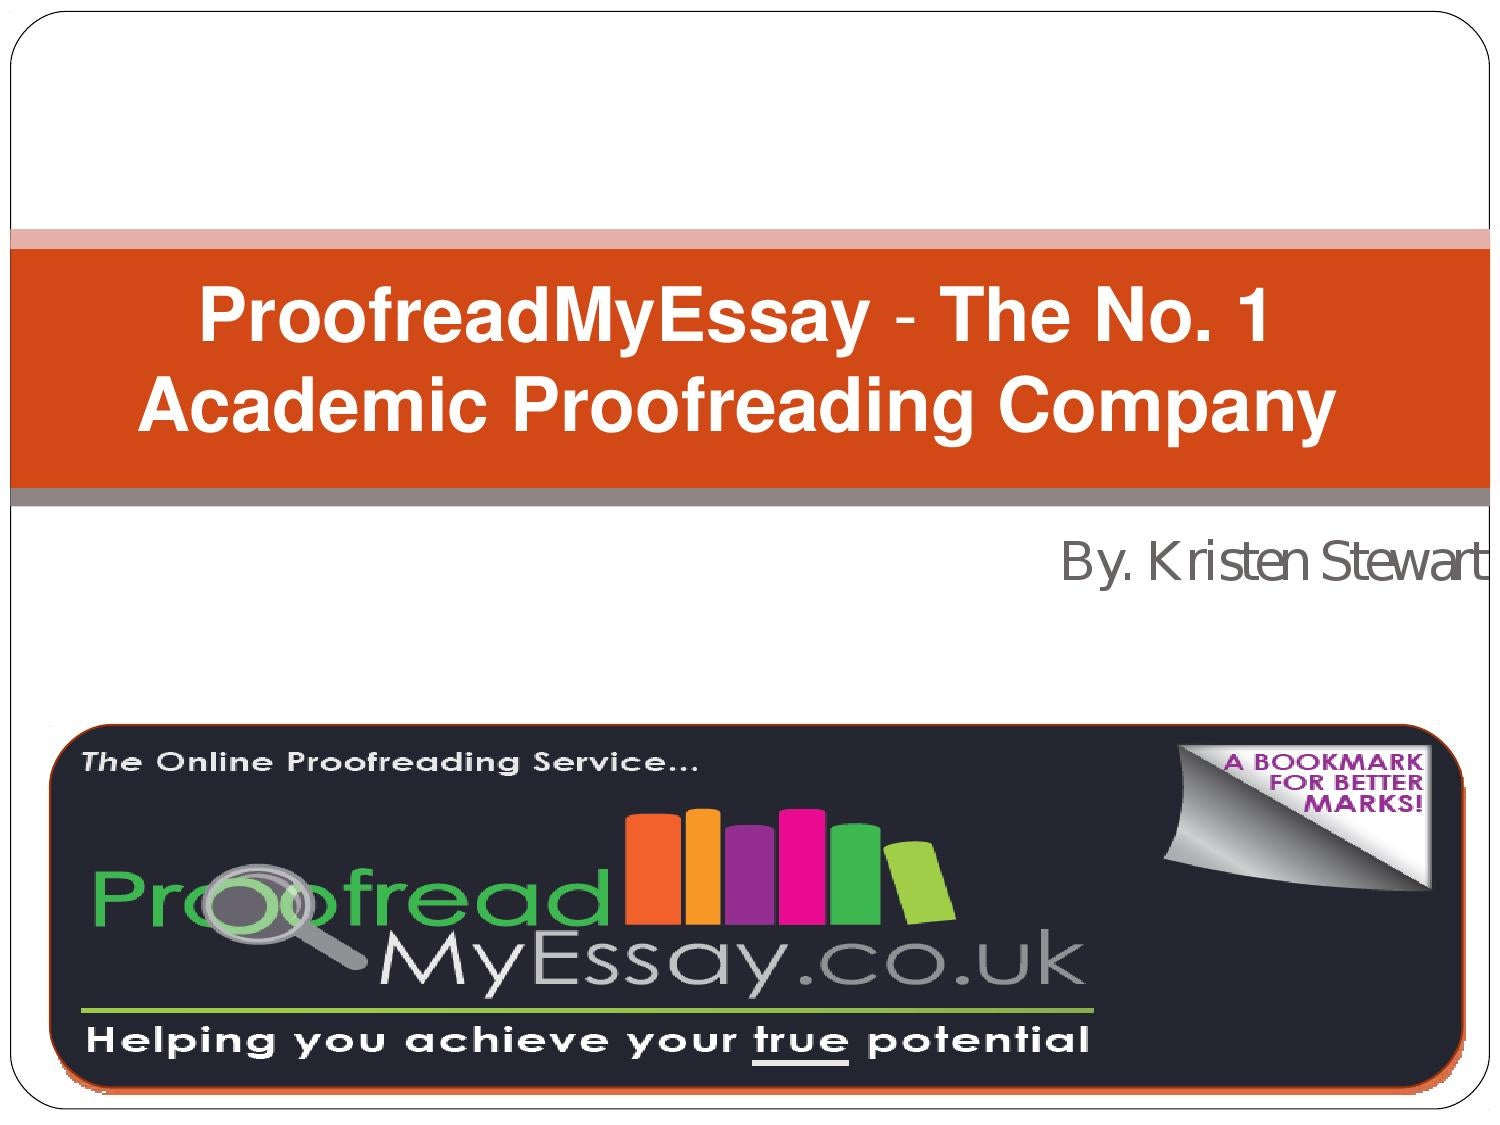 What Is A Thesis Statement In An Essay Proofreadmyessay  The No  Academic Proofreading Company By  Proofreadmyessay Ltd  Issuu Health And Fitness Essay also Short English Essays Proofreadmyessay  The No  Academic Proofreading Company By  Essay Good Health